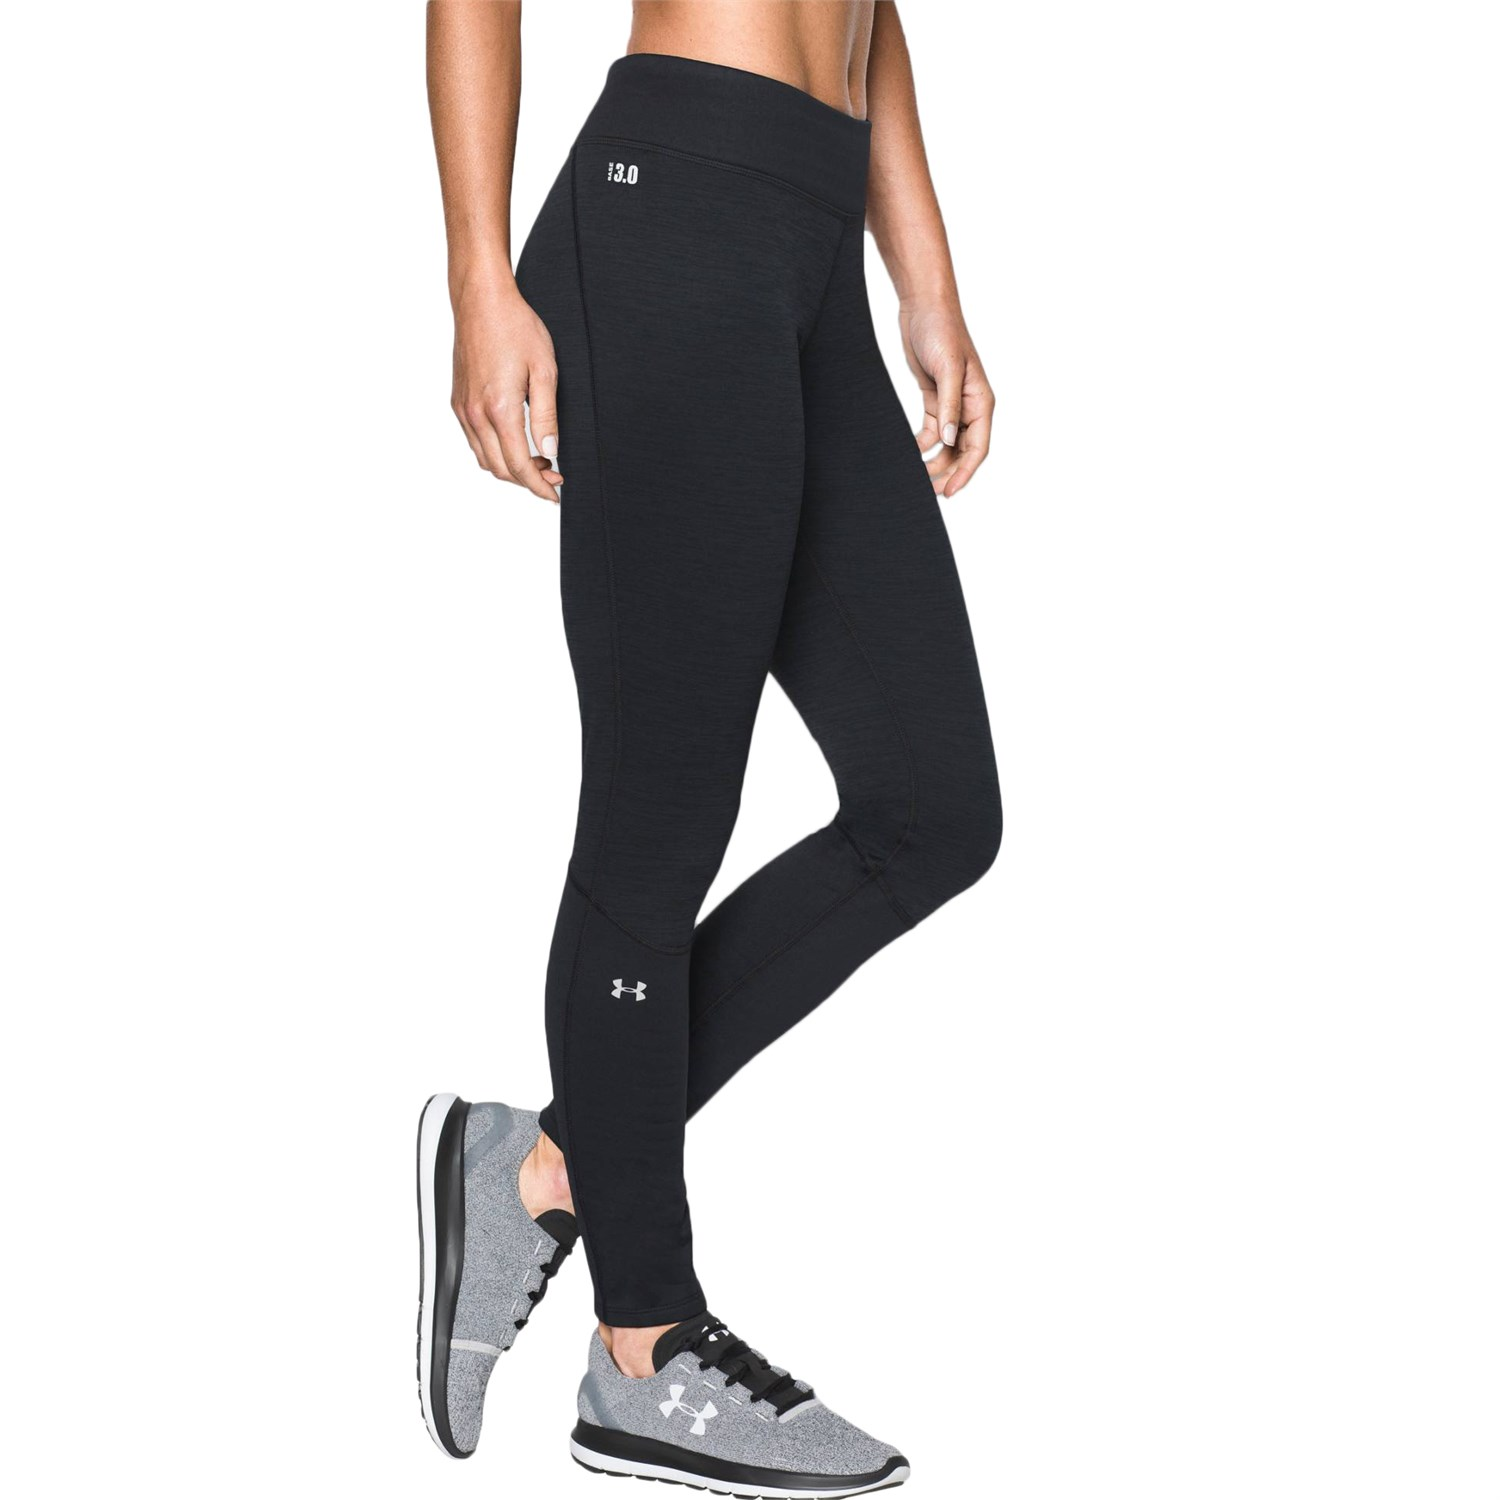 8aa71899bb Under Armour Base™ 3.0 Legging Pants - Women's